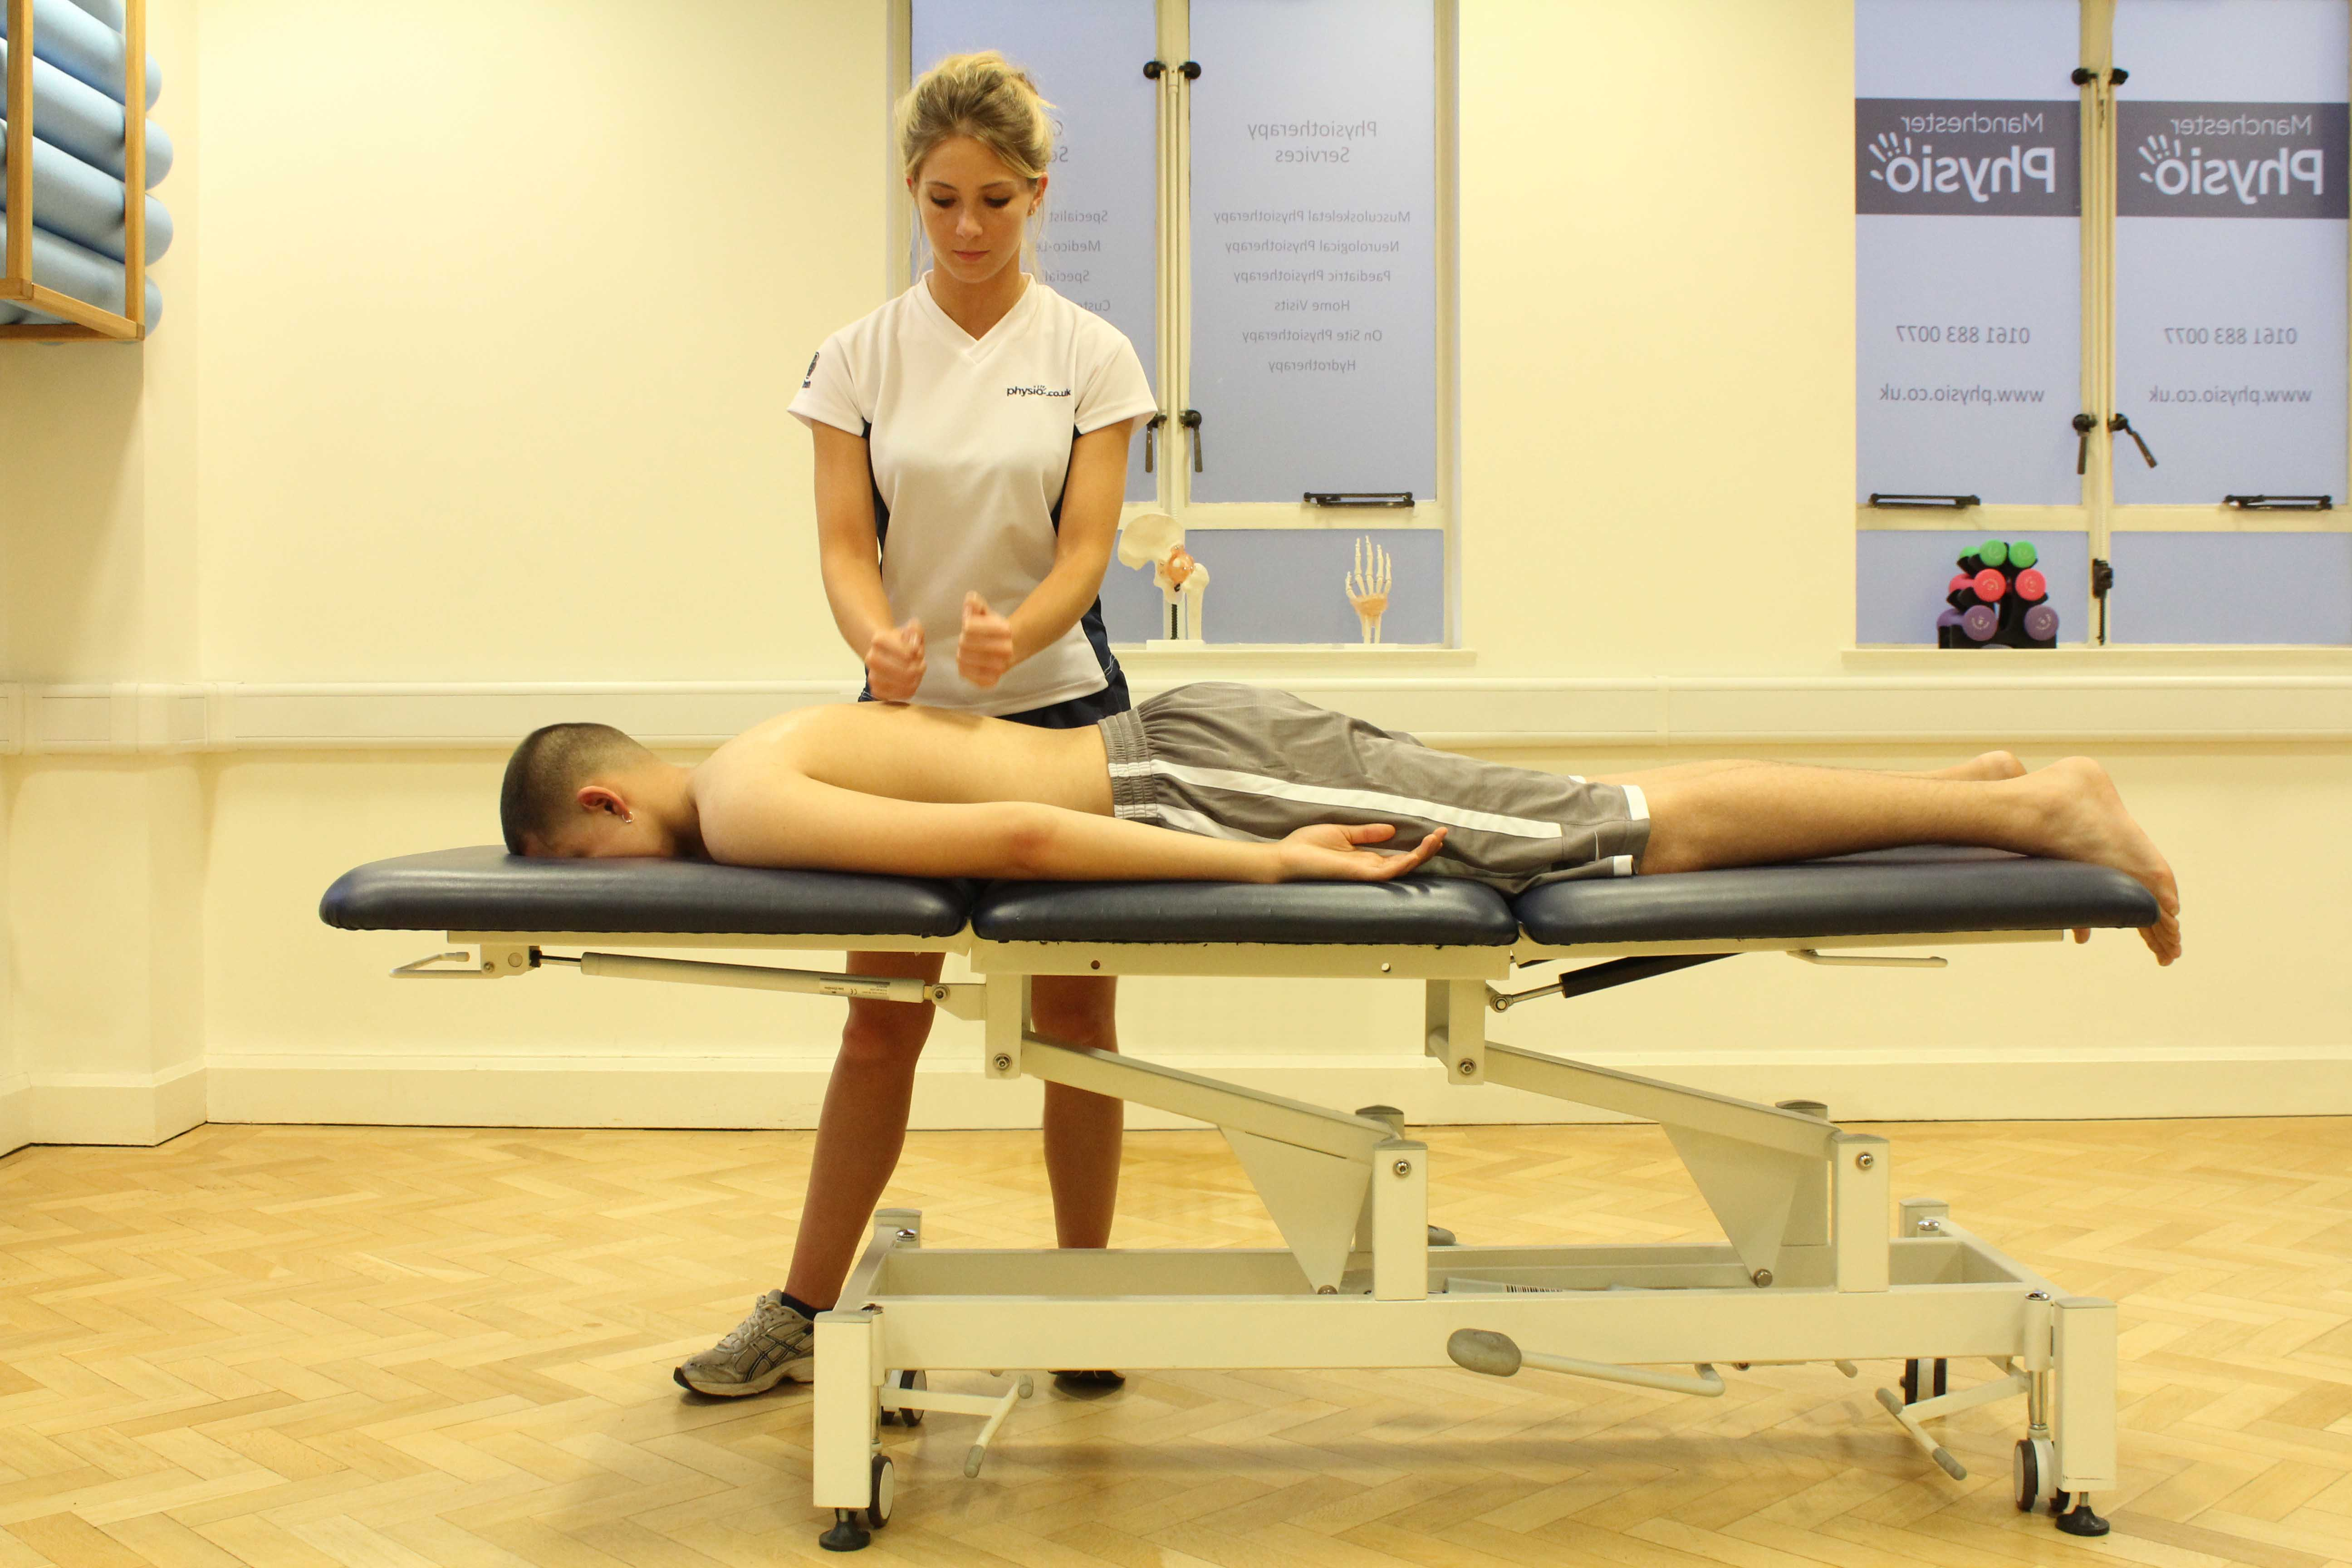 Beating percussion massage technique applied to latissimus dorsi muscle